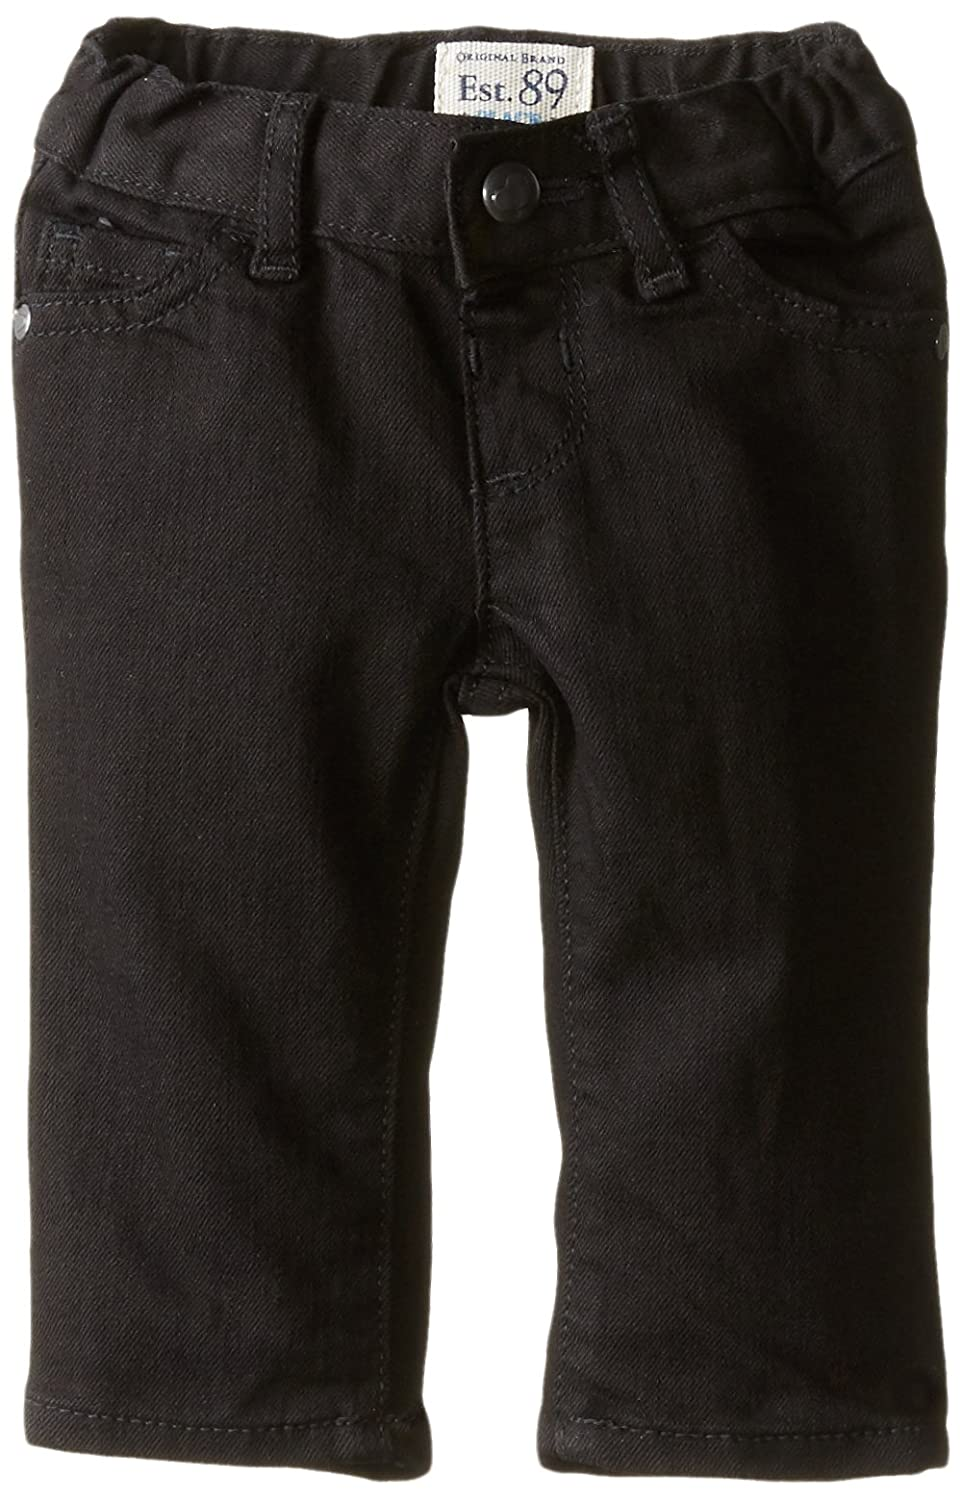 The Children's Place Baby Girls' Skinny Jean The Children's Place